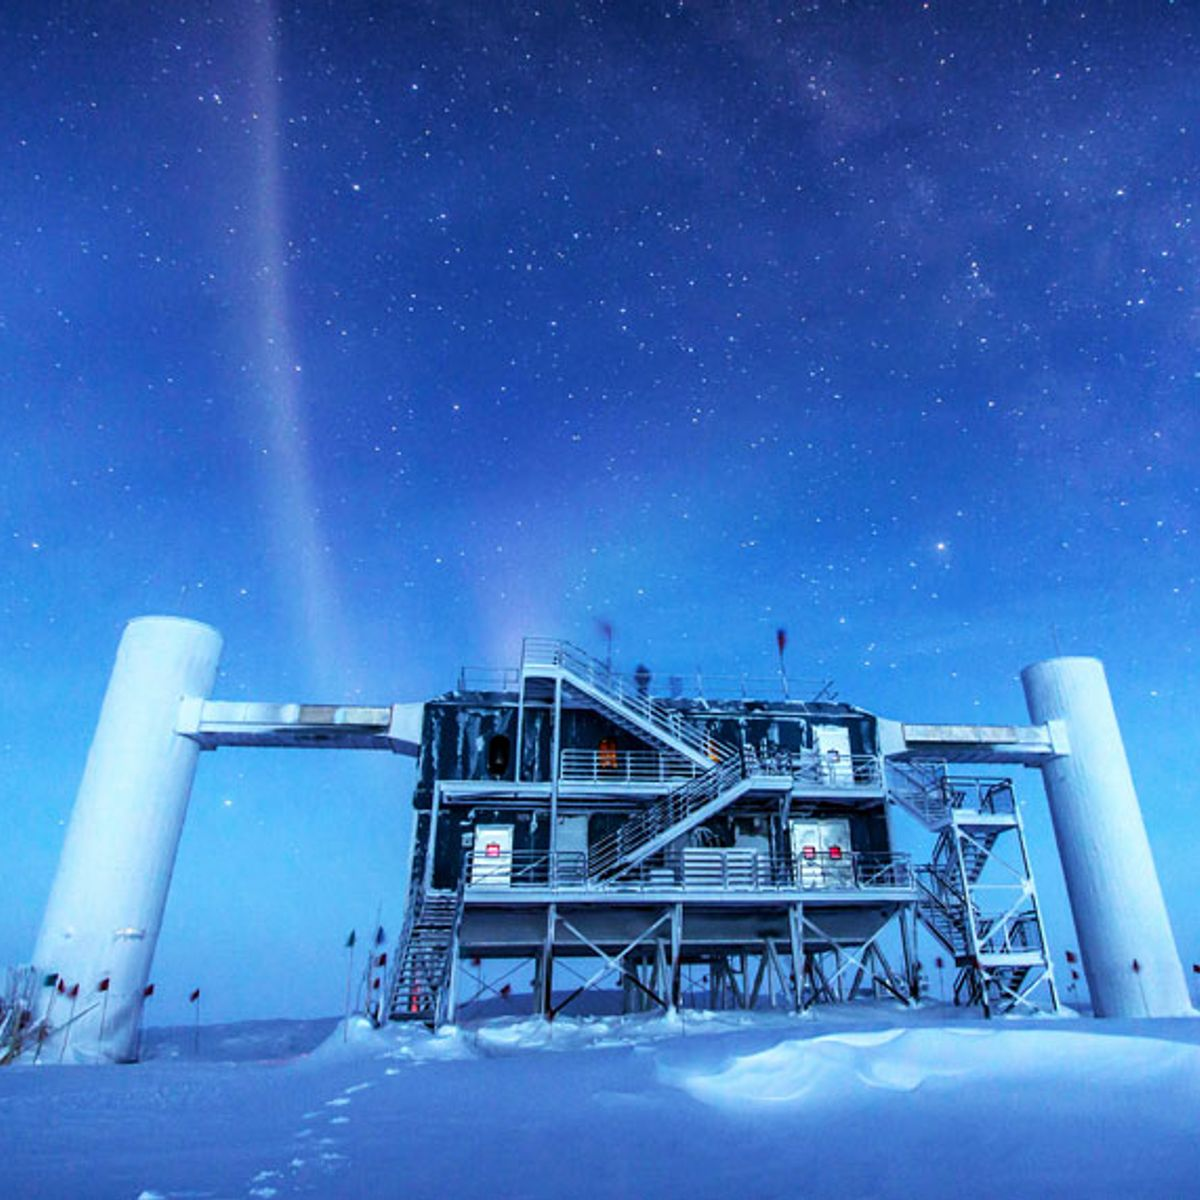 Bizarre neutrinos detected in Antarctica could open the door to new physics discoveries